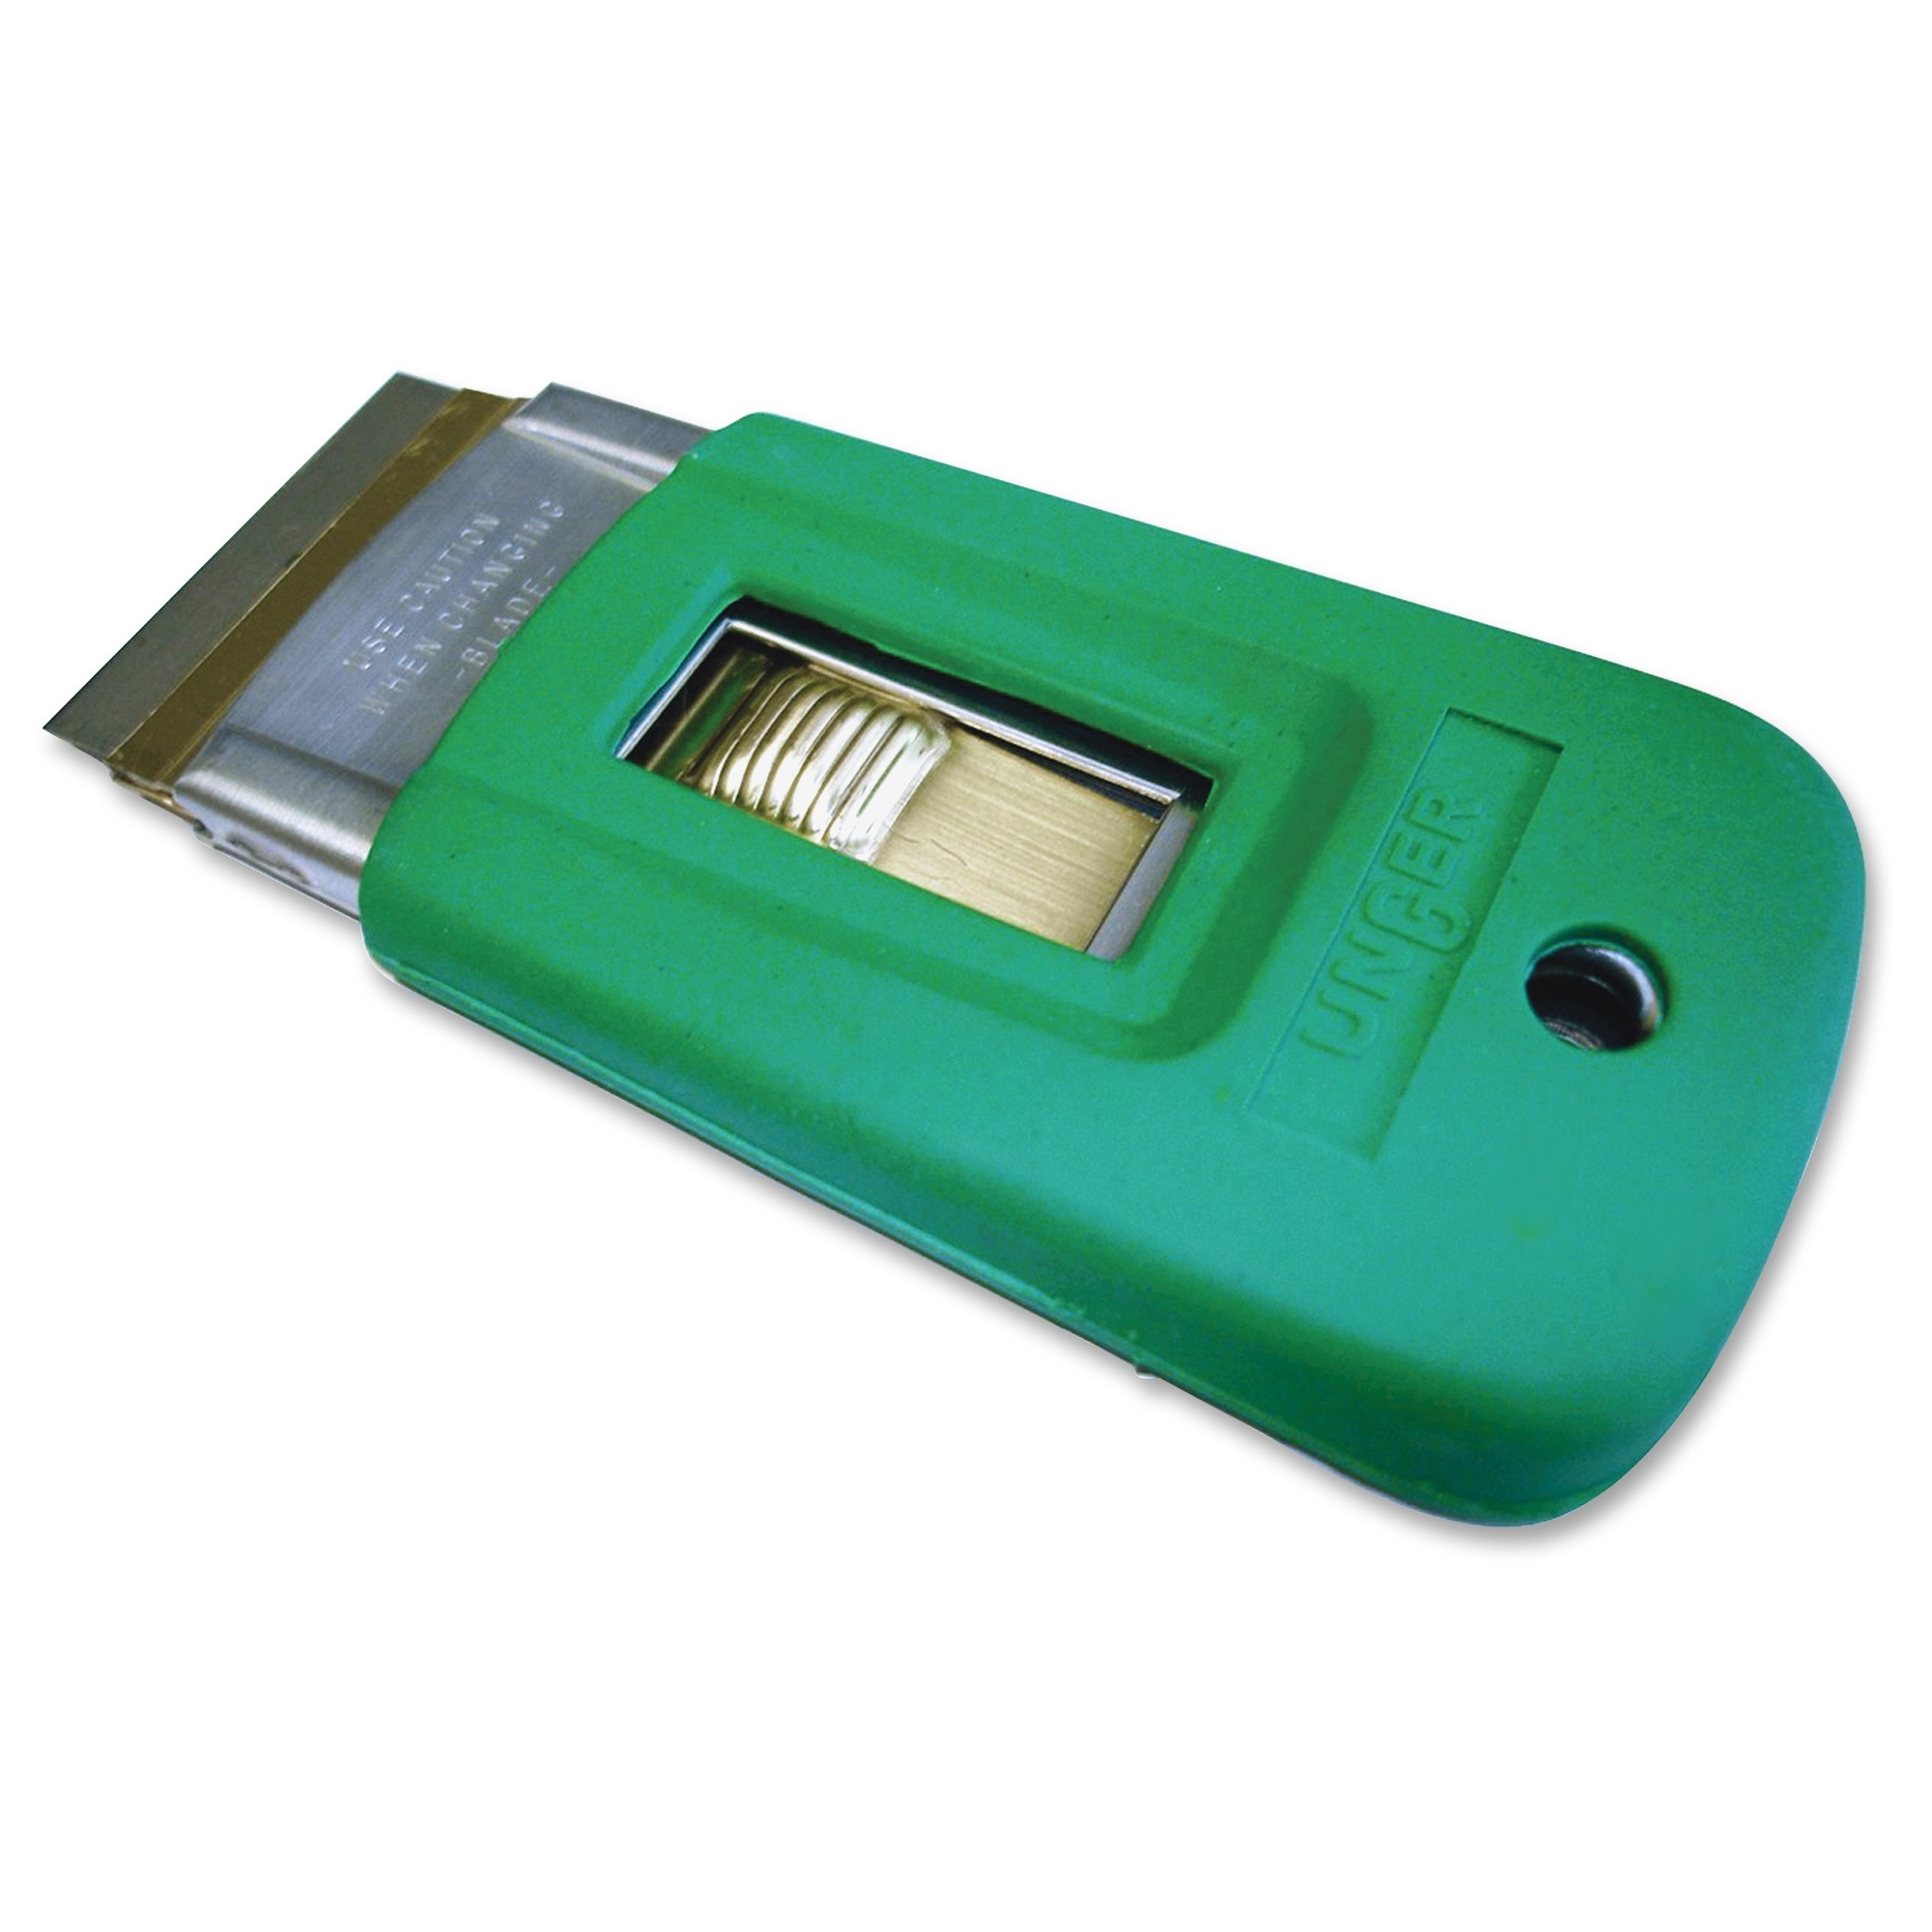 """Unger Safety Scrapers - Retractable, Safety Lock - 1.50"""" Head - Stainless Steel, Rubber - Green (sr040ct)"""